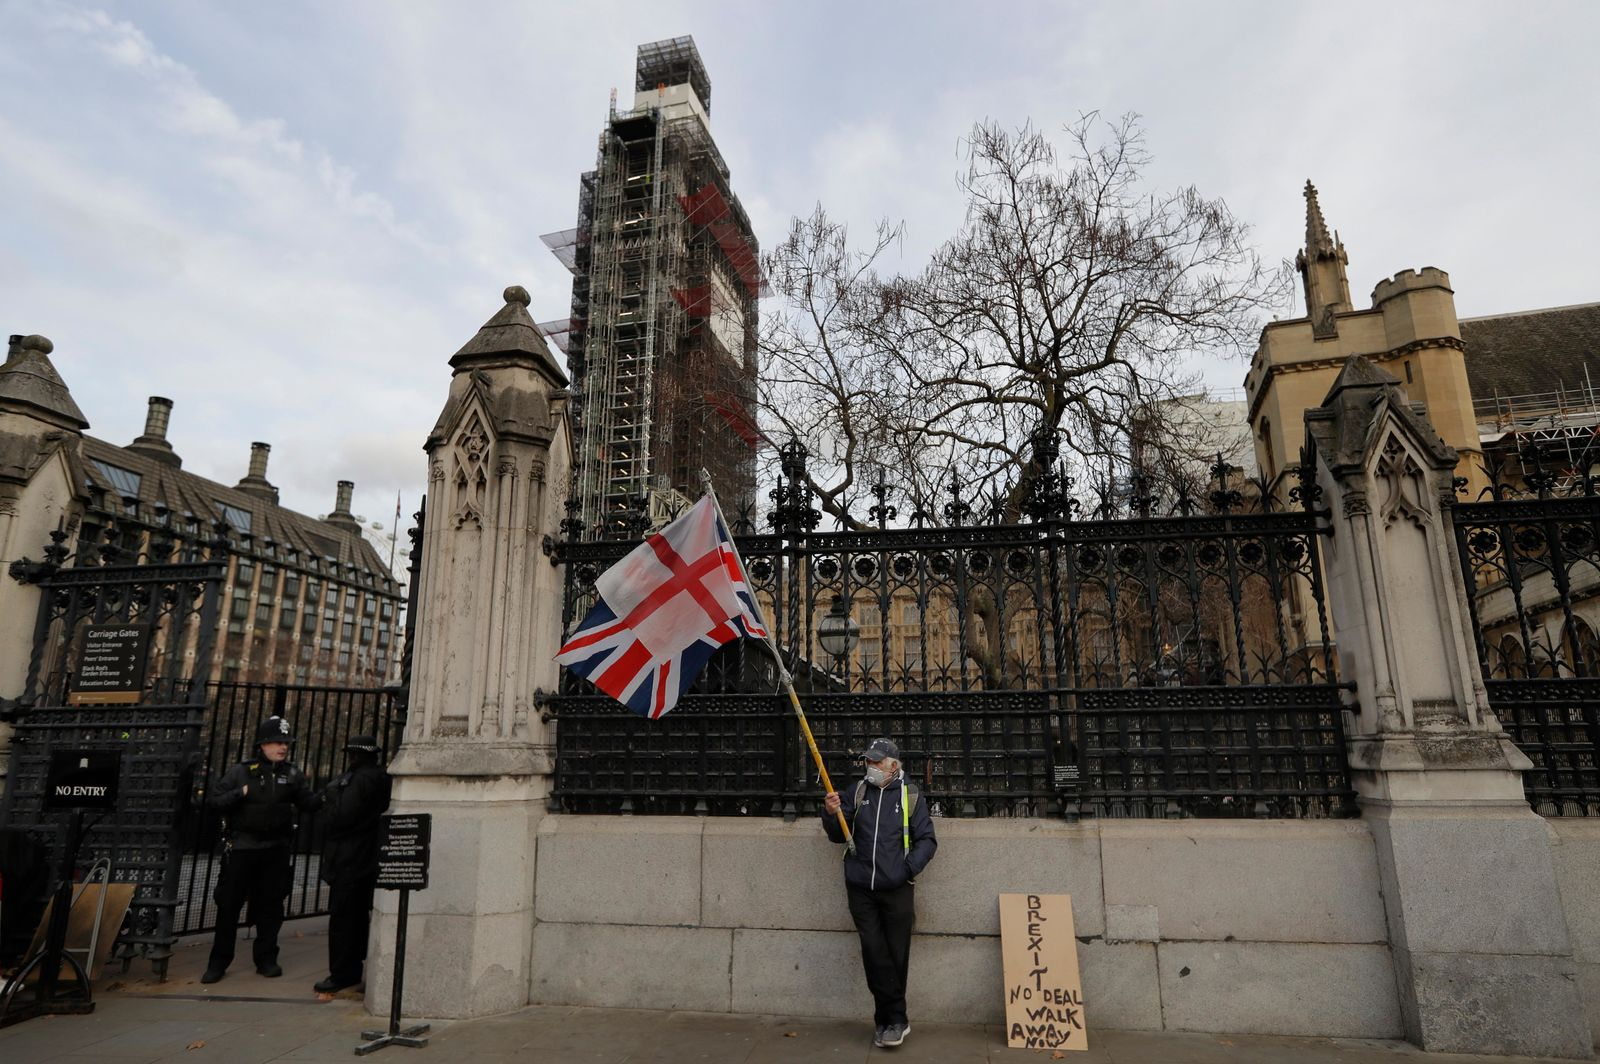 A lone demonstrator stands by an entrance to Britain's parliament in London, Friday, Jan. 18. (AP Photo/Kirsty Wigglesworth)